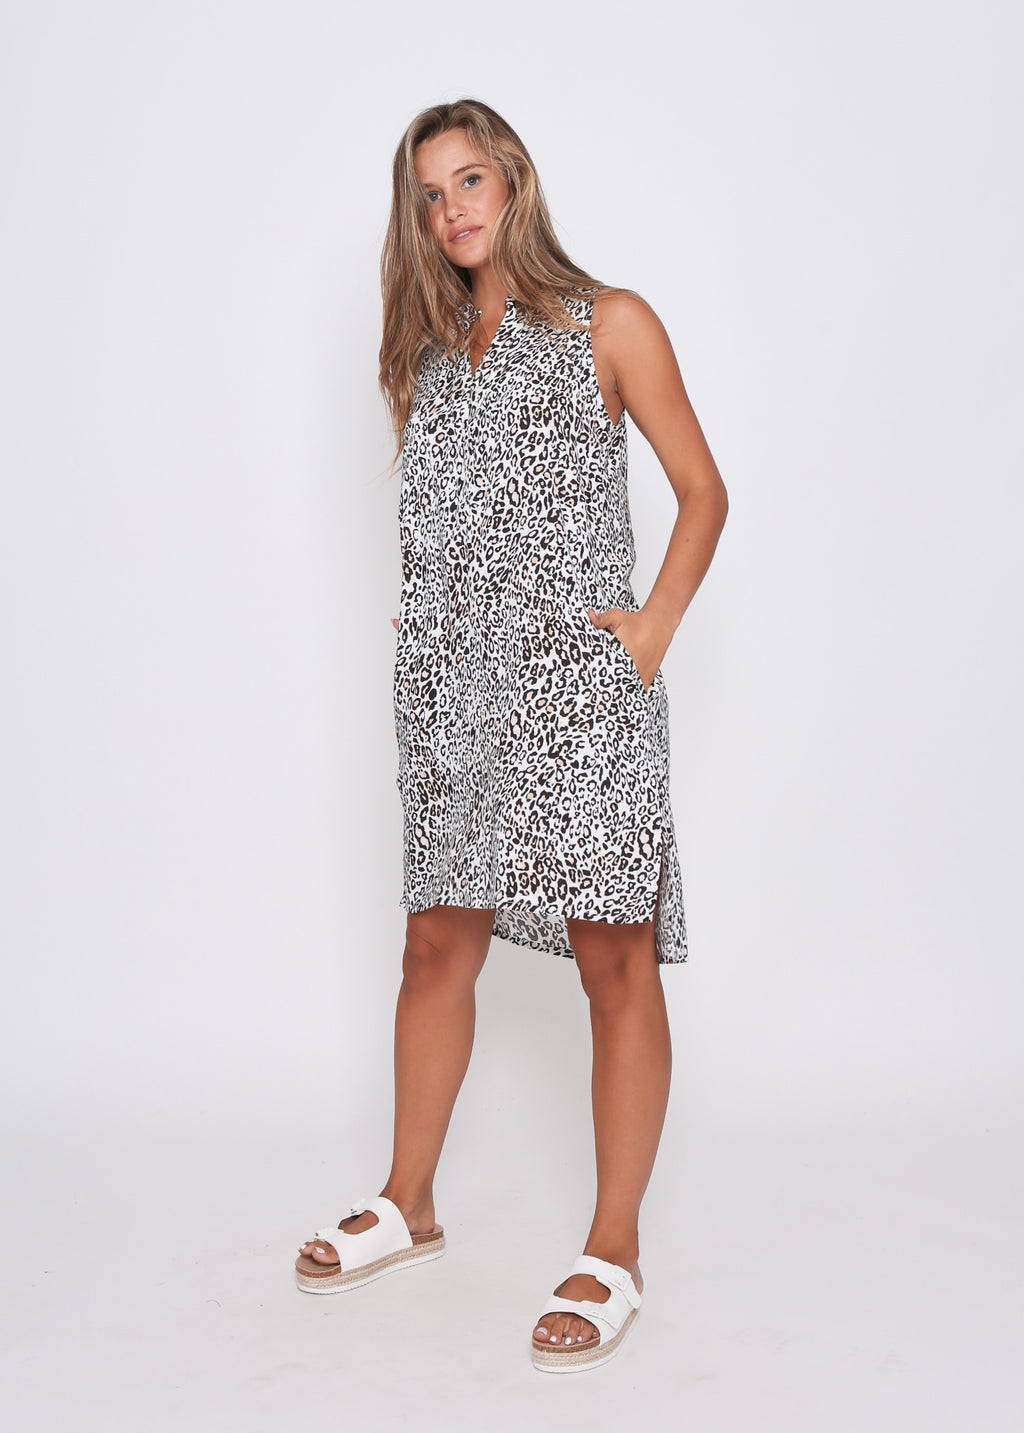 NEW - MIA SLEEVE-LESS DRESS - LEOPARD PRINT